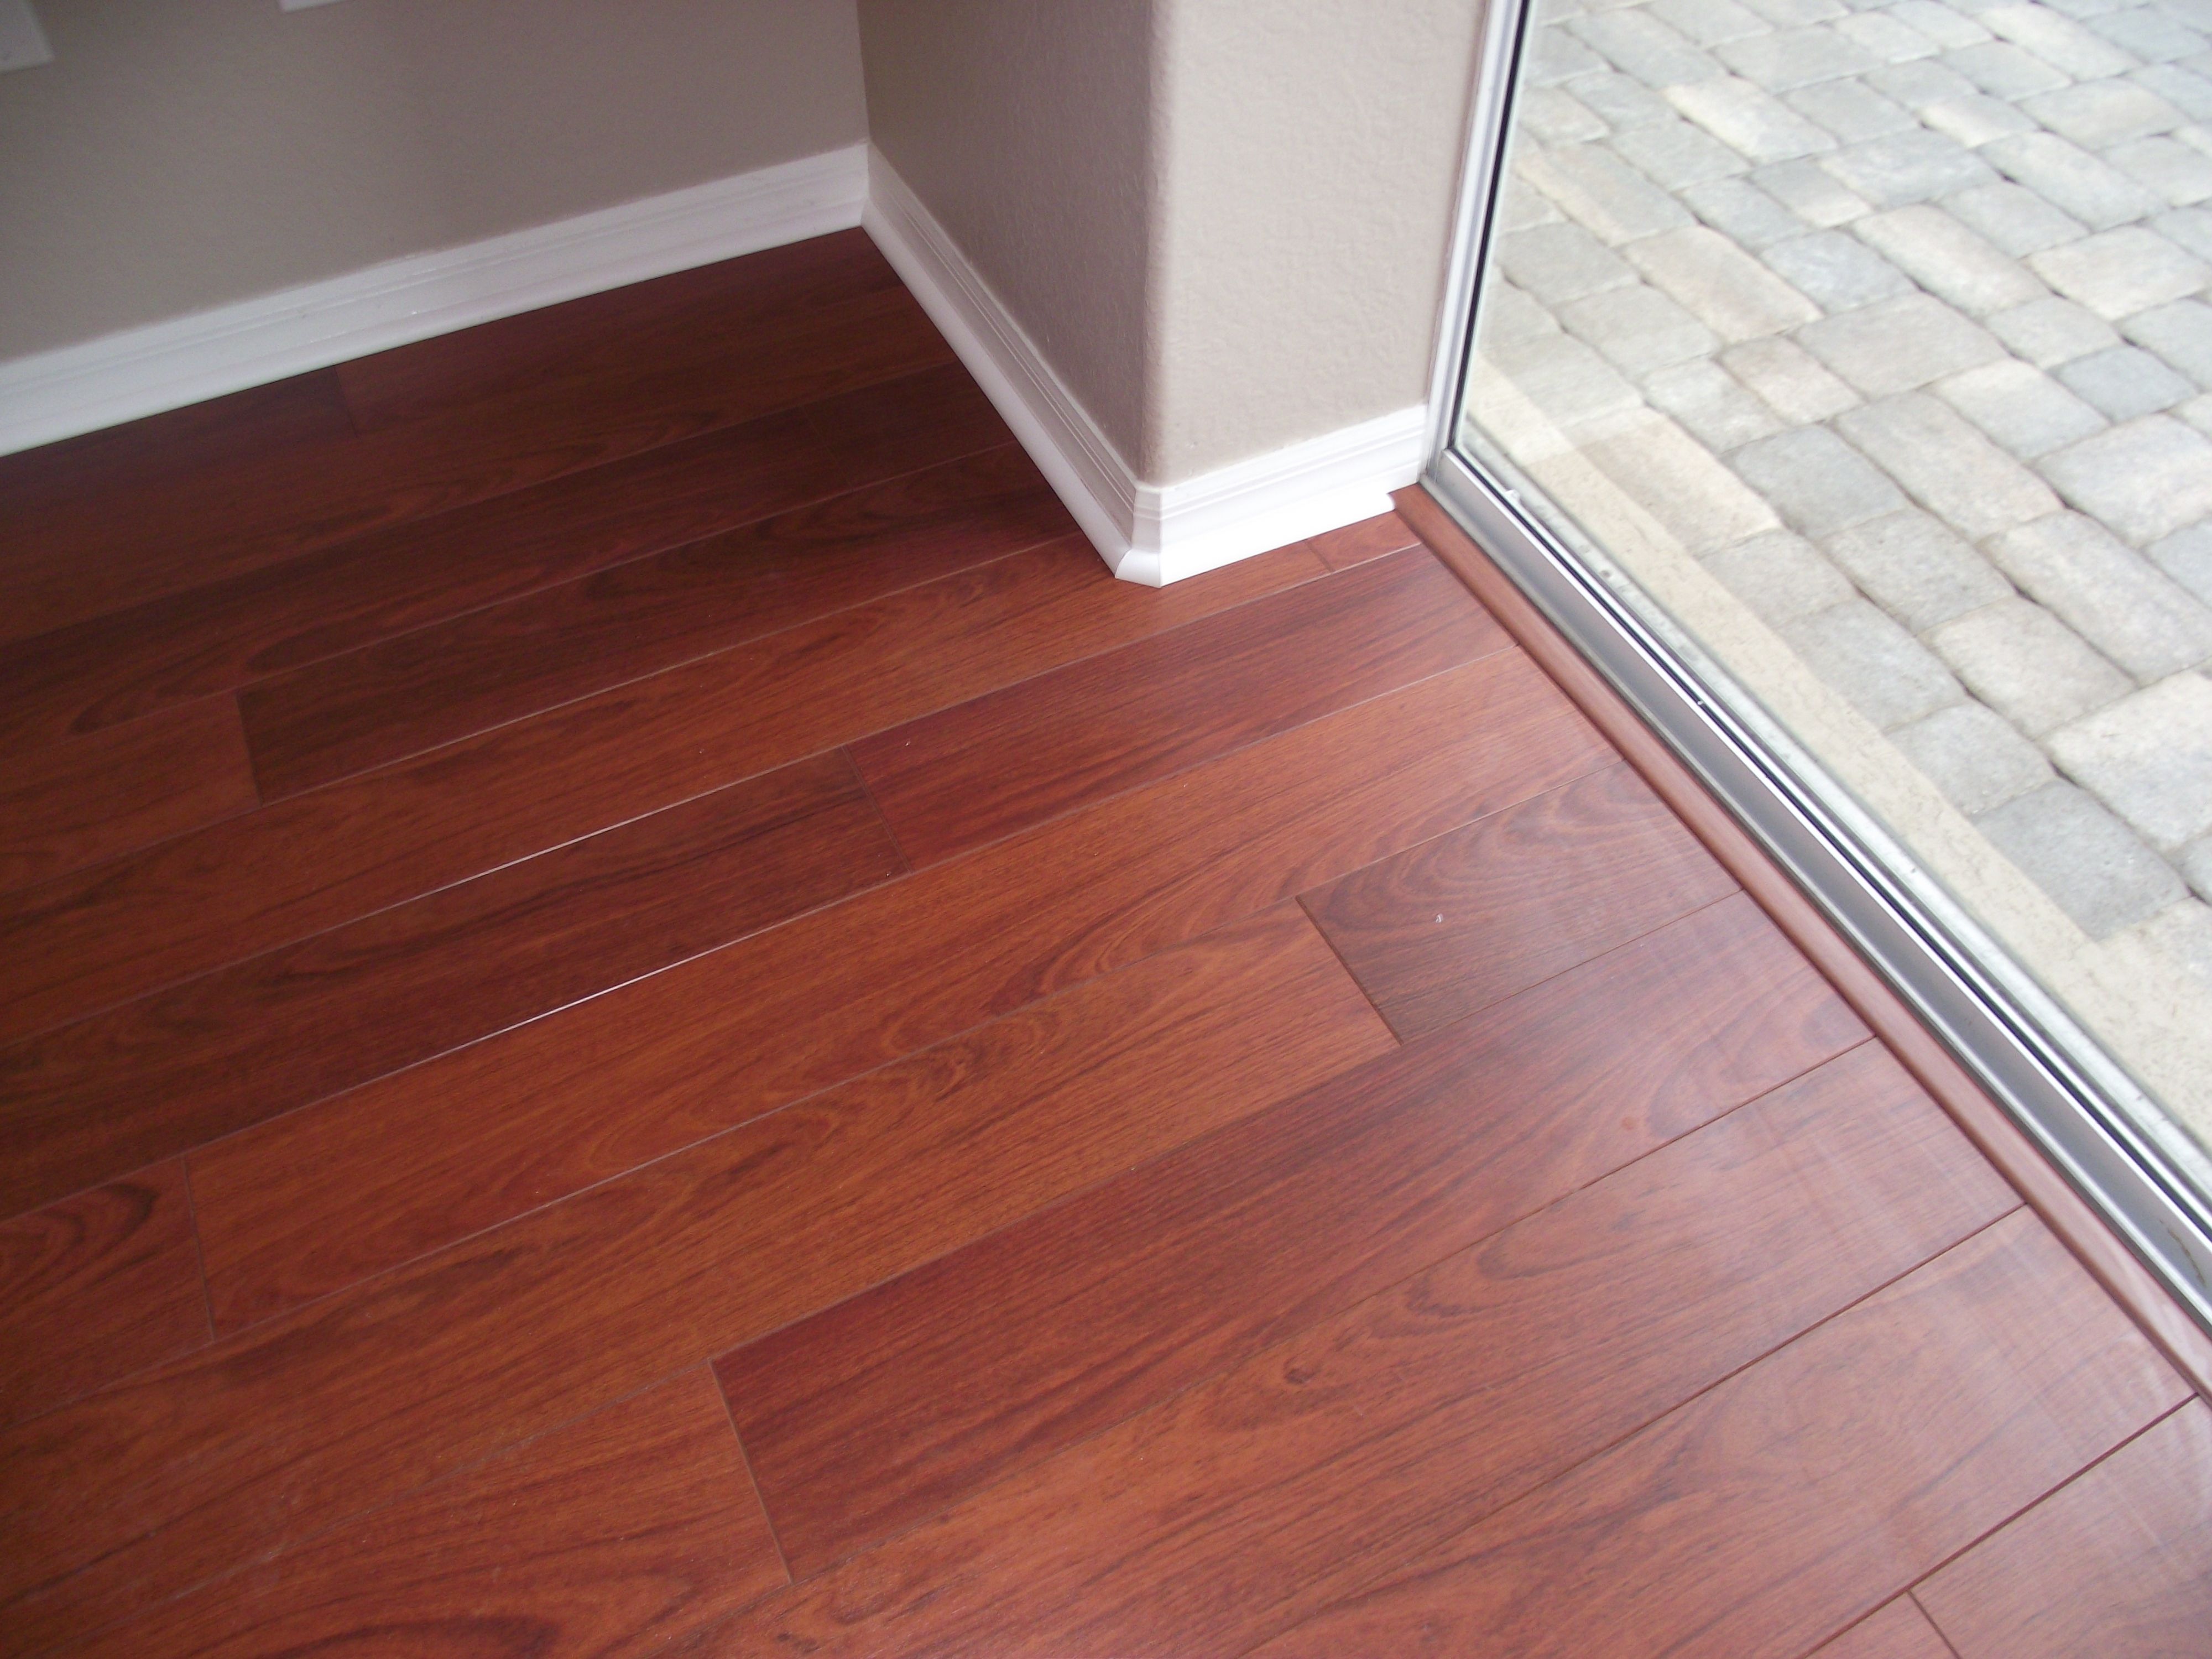 Finished laminate flooring at sliding glass door